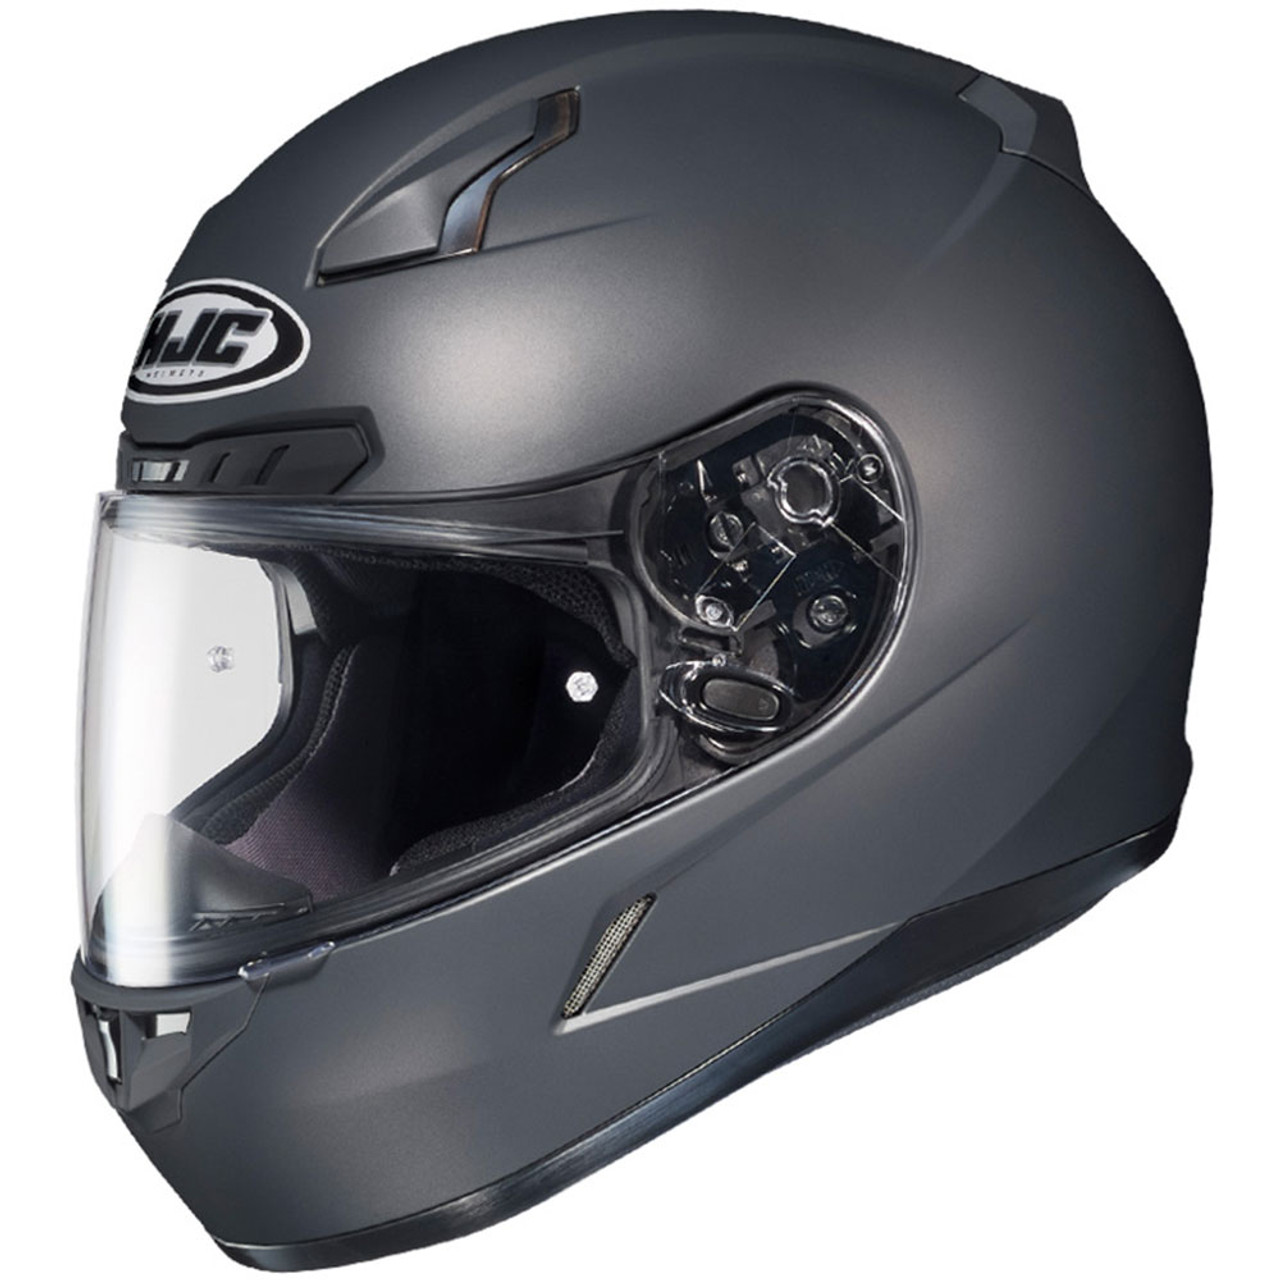 d6c429f9 HJC CL-17 Solid Matte Anthracite Helmet - Get Lowered Cycles